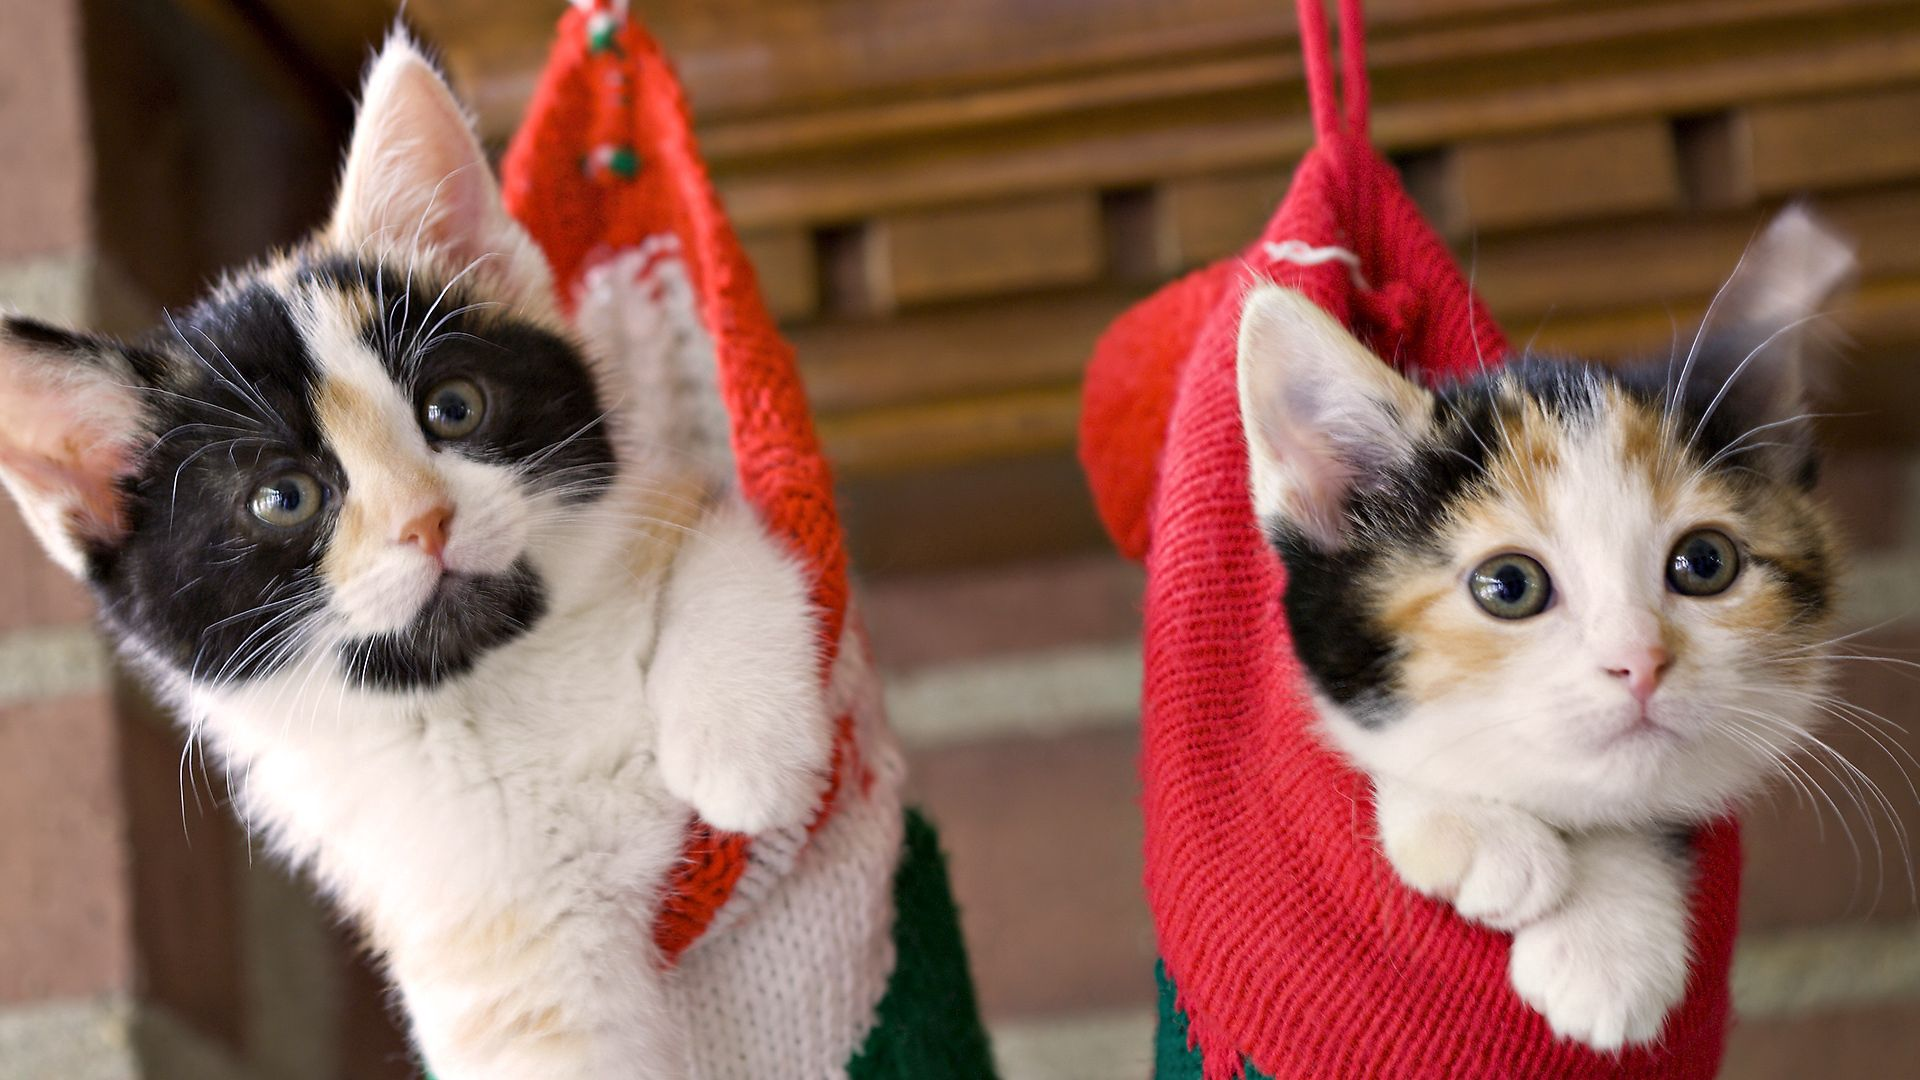 123585 Screensavers and Wallpapers Kittens for phone. Download Animals, Couple, Pair, Spotted, Christmas, Holiday, Kittens, Hang, Sock pictures for free